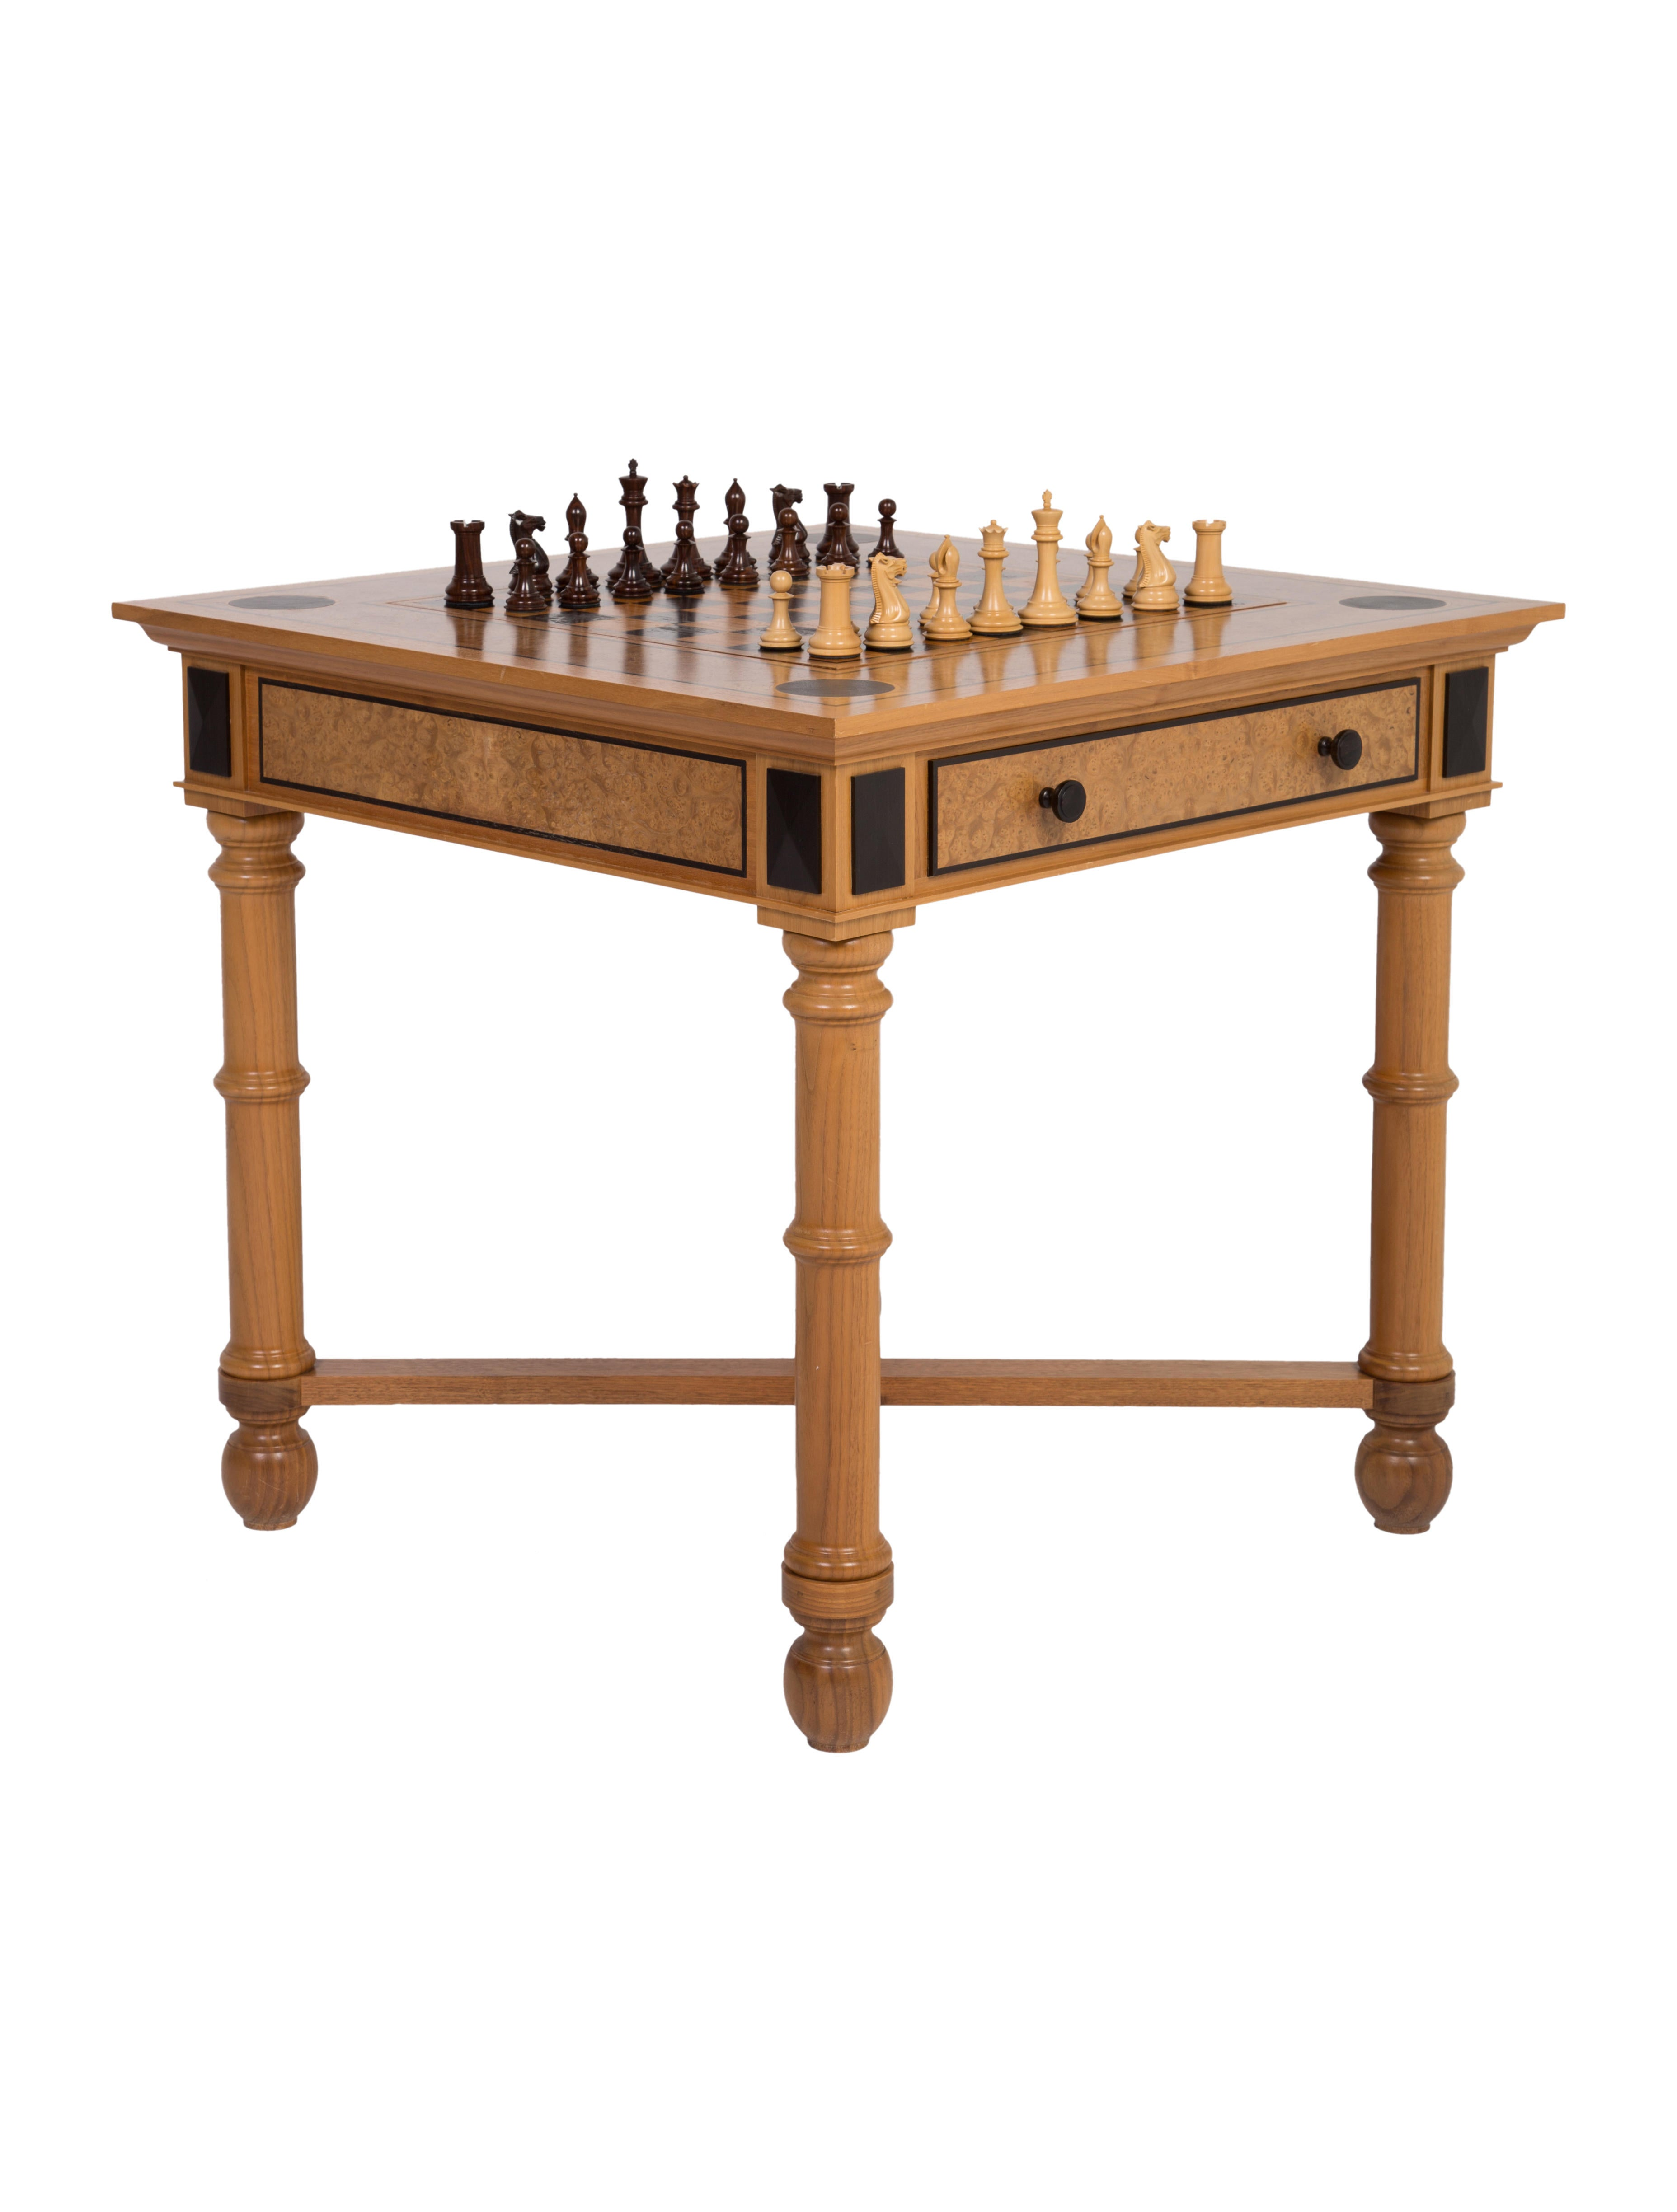 David Linley Game Table Furniture TABLE